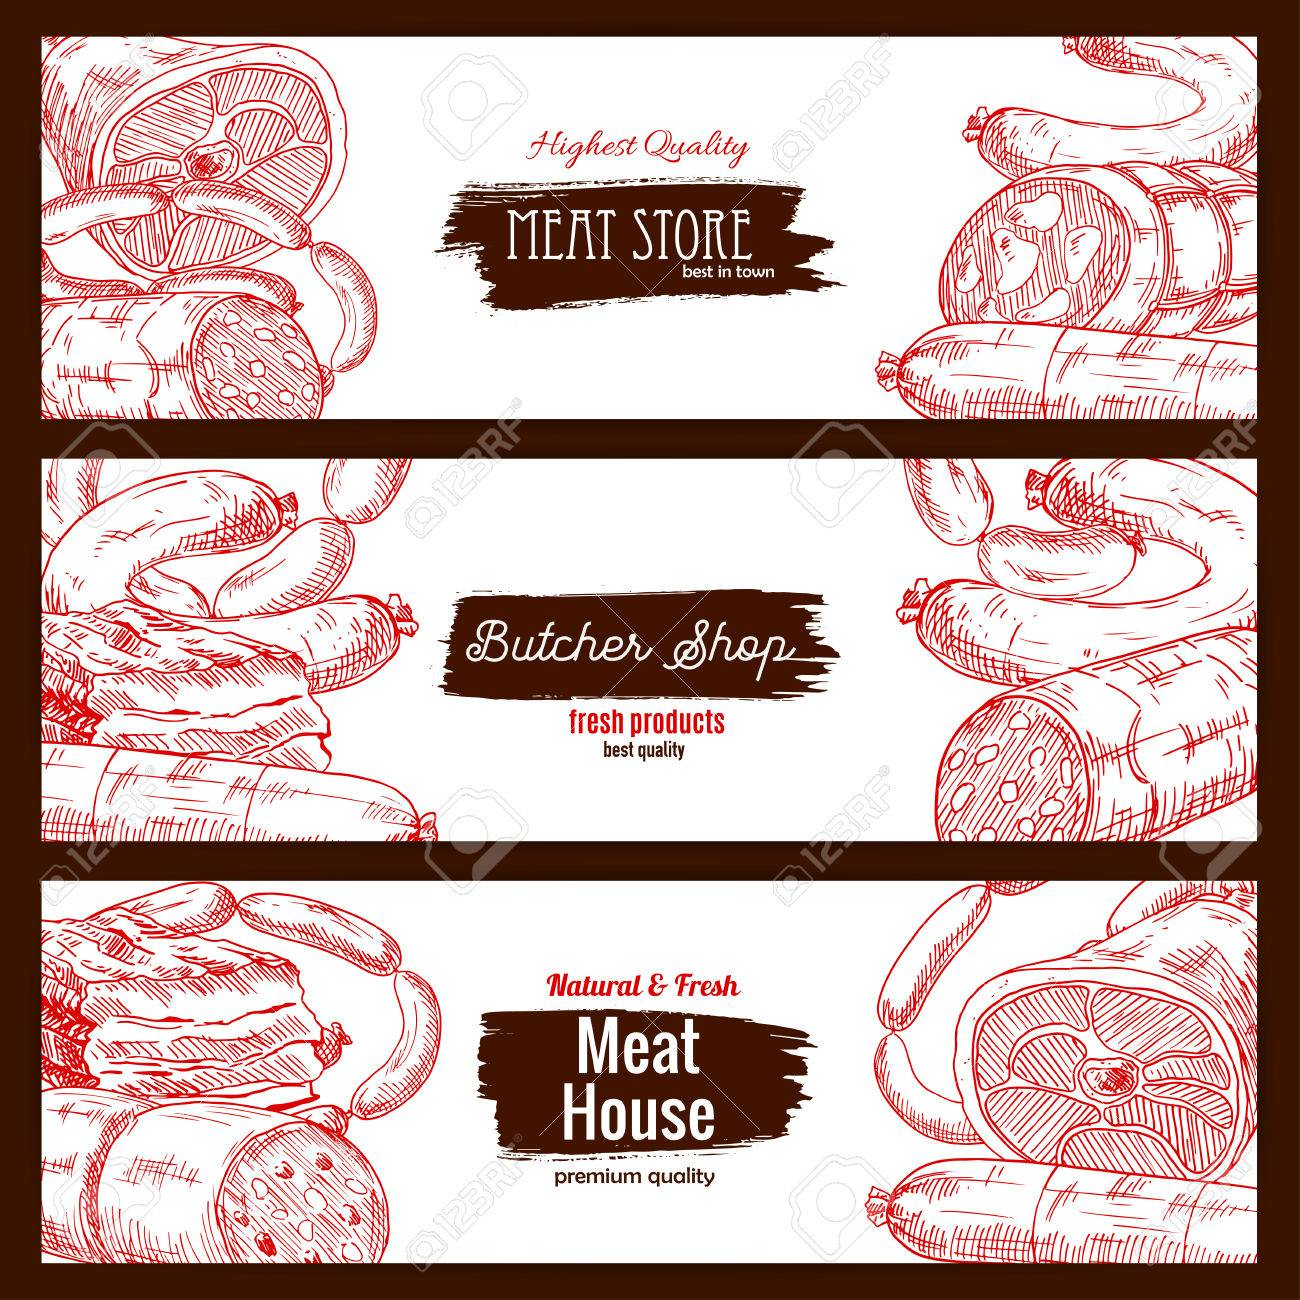 Meat store or butcher shop products. Butchery house banners set of sketch salami, pepperoni and kielbasa wurst sausages, pork bacon and ham jamon, beef or veal meat loaf piece of fresh or smoked meaty lard delicatessen - 70051910